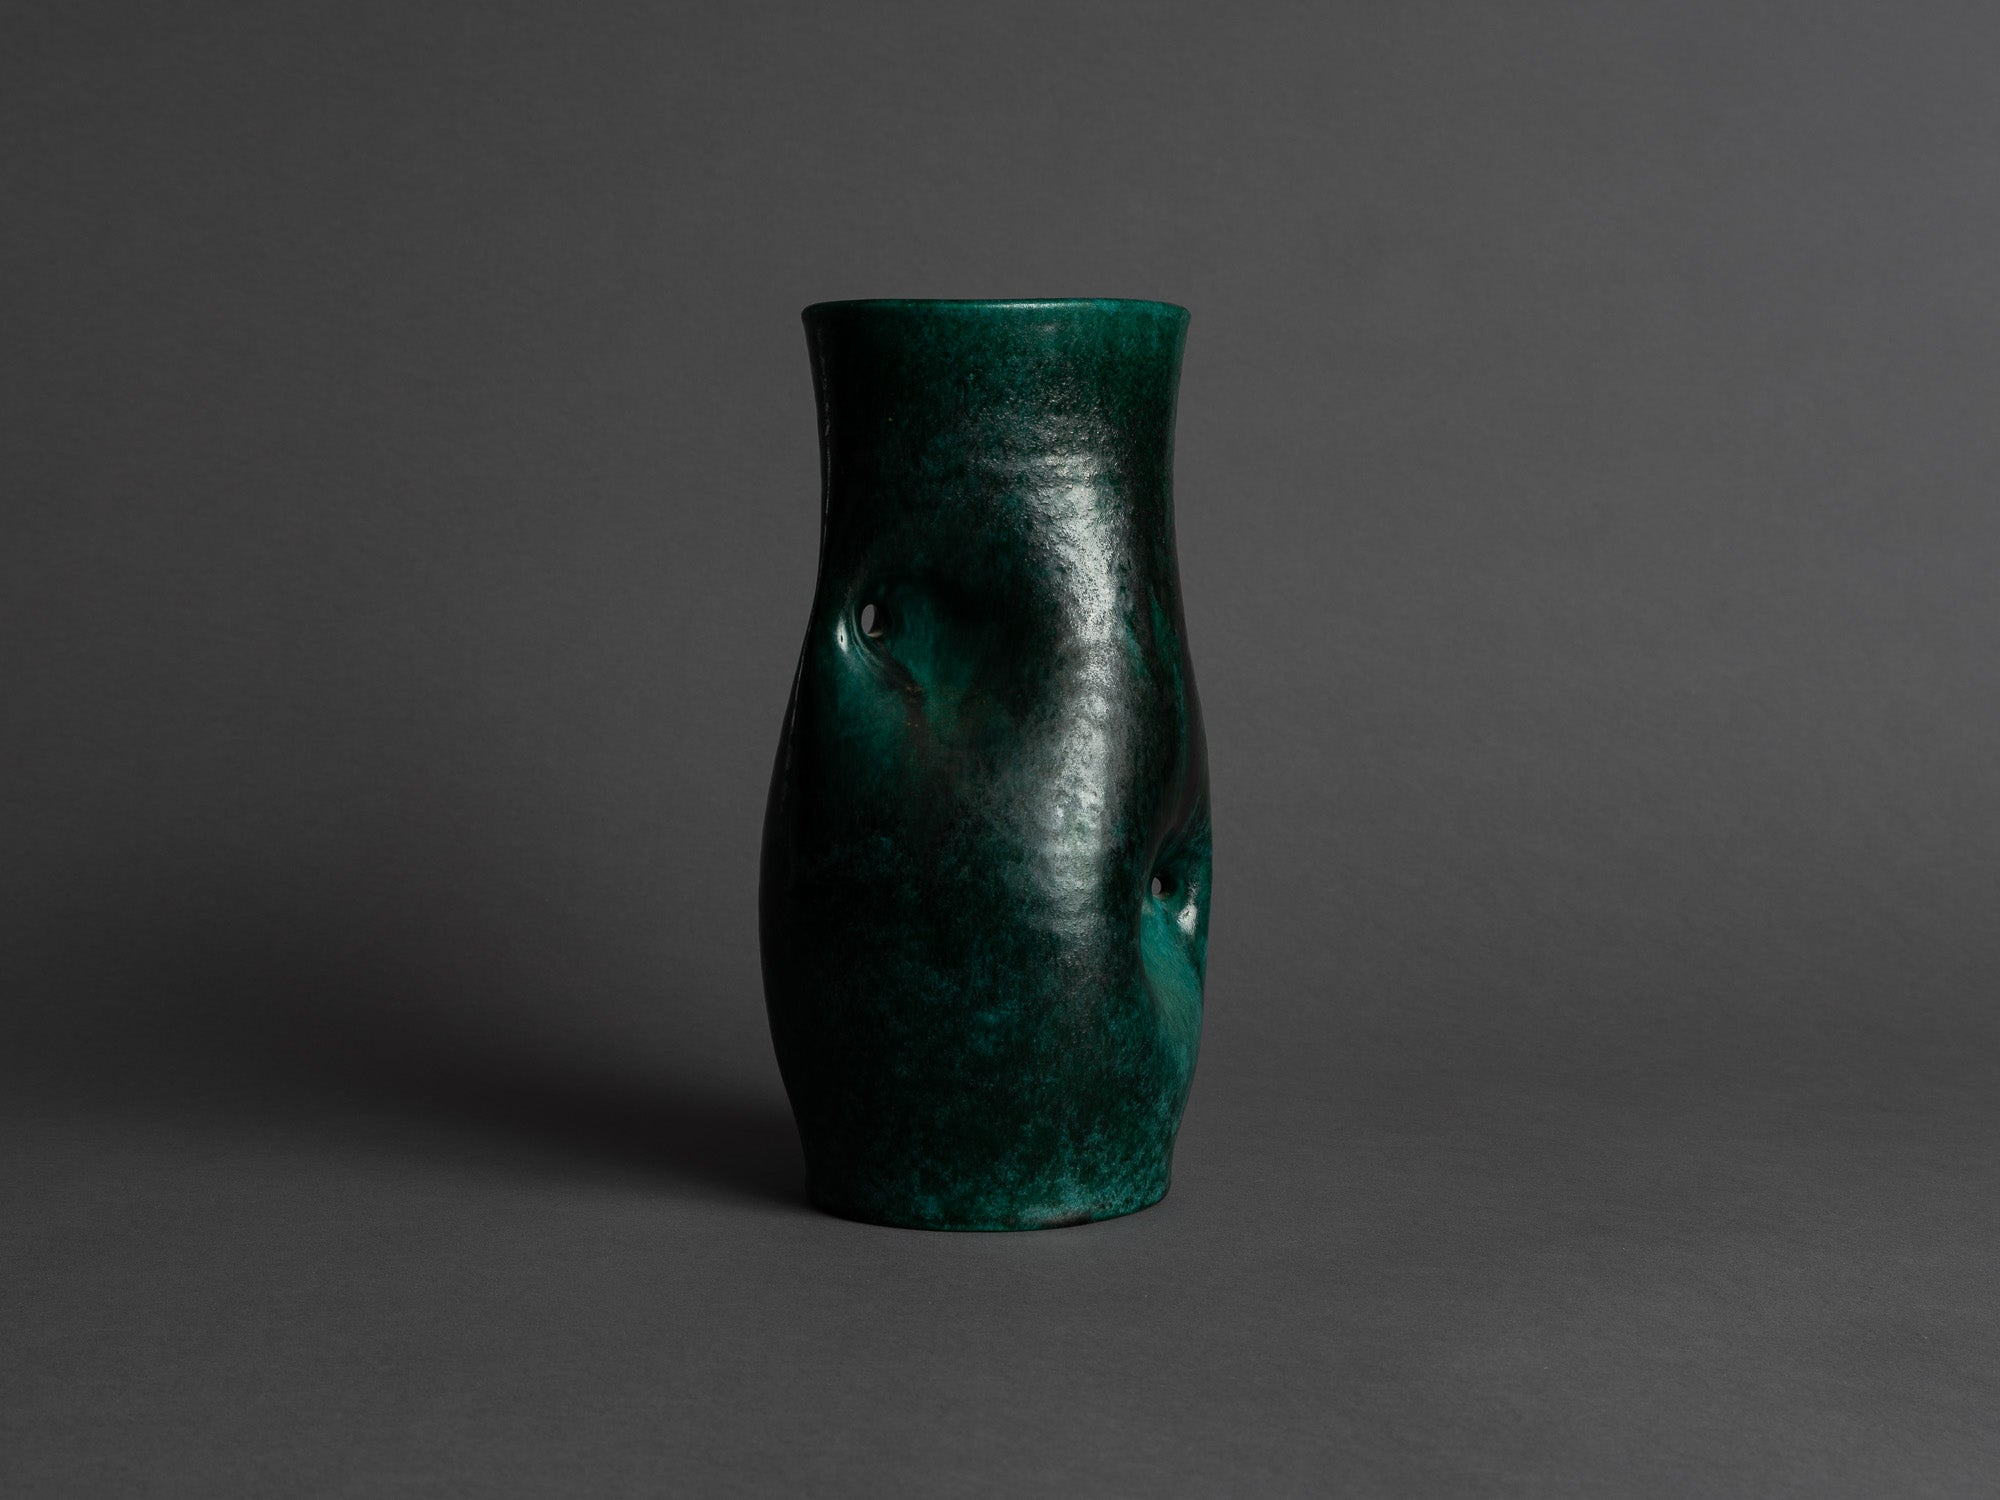 Vase biomorphique des Potiers d'Accolay, France (vers 1955)..Freeform Vase by les Potiers d'Accolay, France (ca 1955)